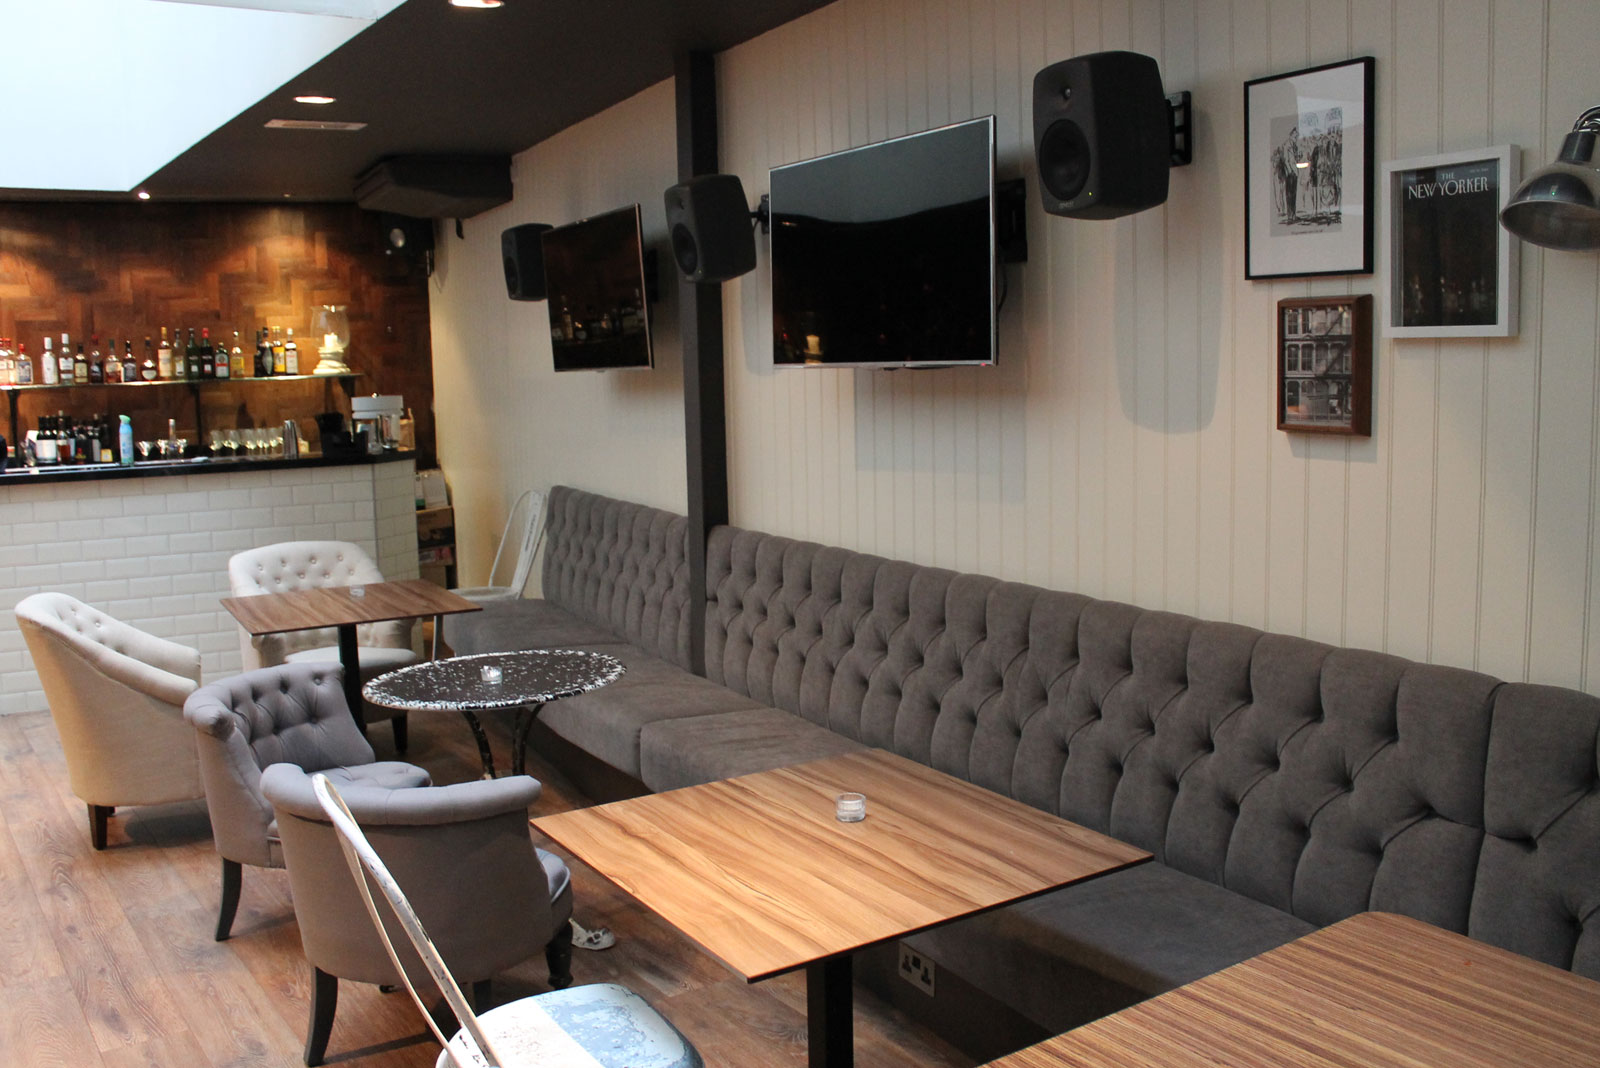 restaurant sofa booth seating sectional leather sofas ottawa banquette for envy bar london fitz impressions